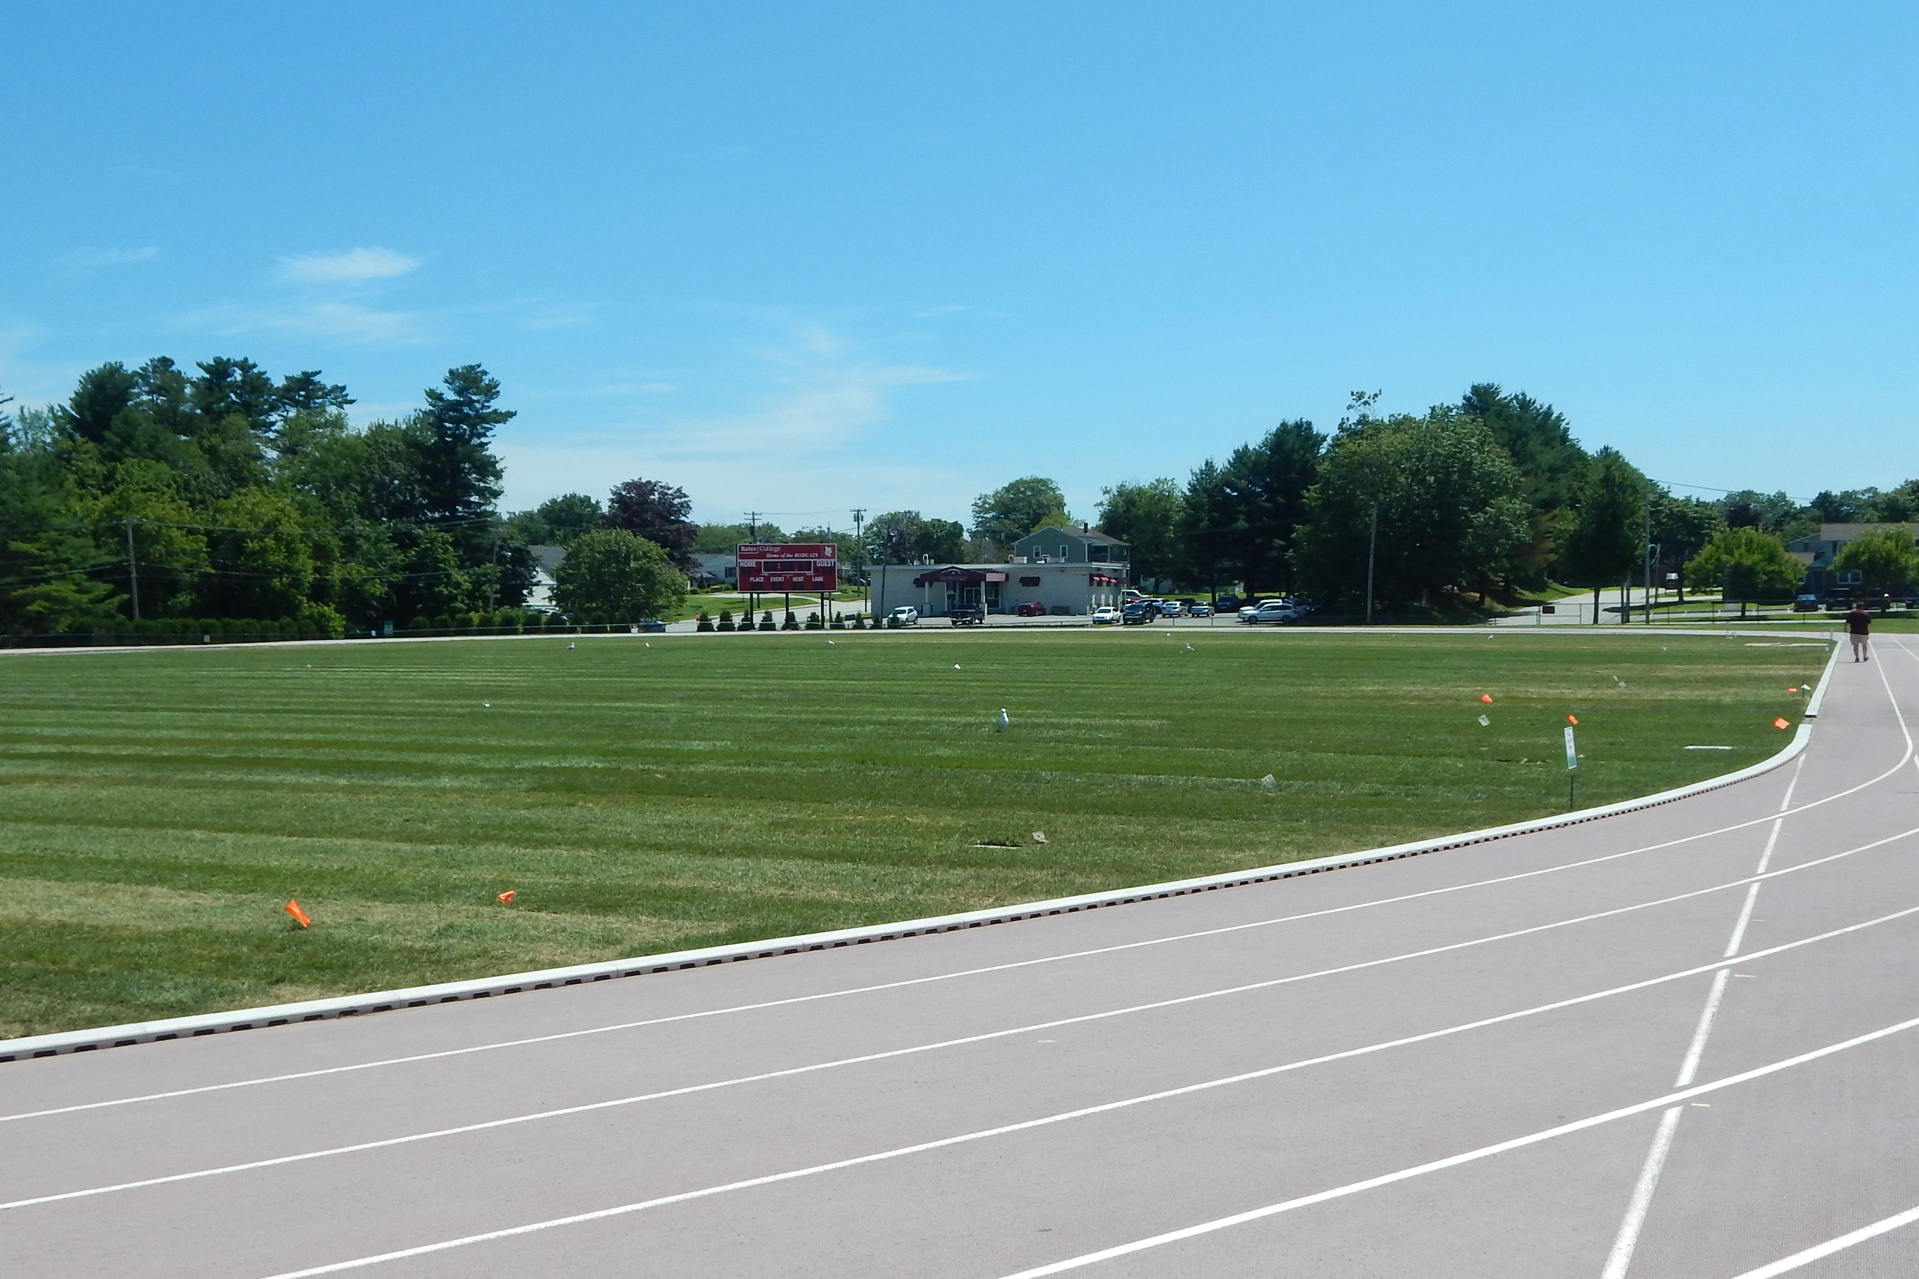 New grass on the Bates soccer field on July 18. (Doug Hubley/Bates College)